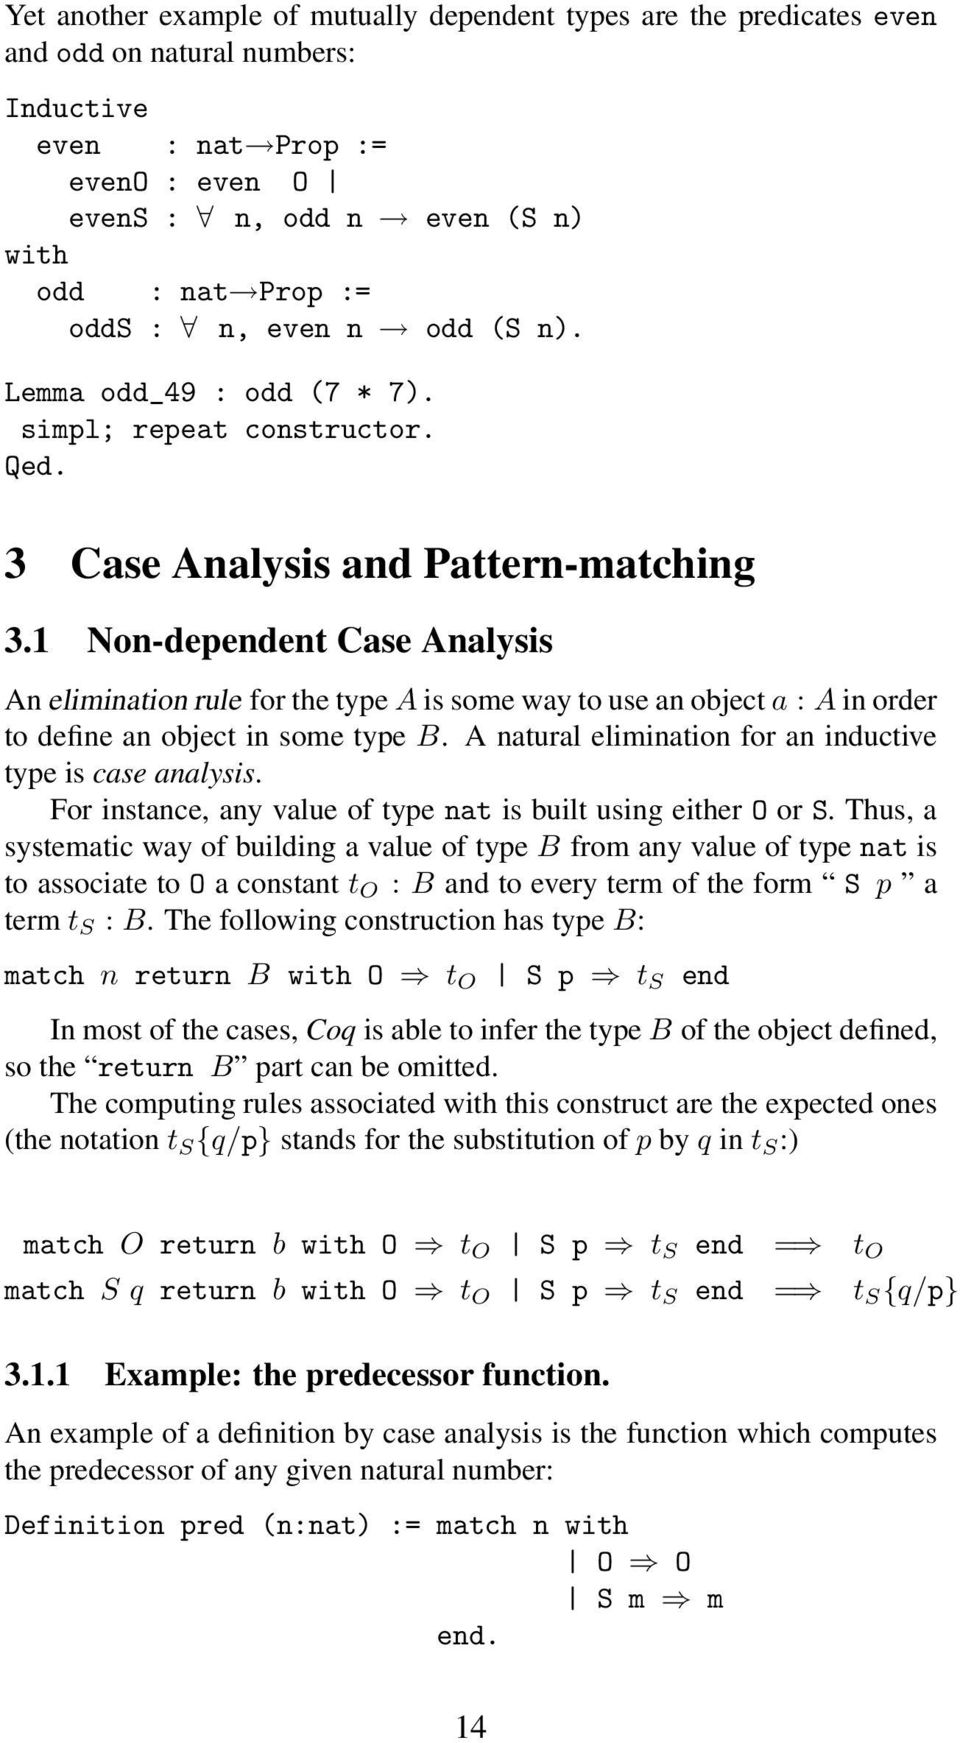 1 Non-dependent Case Analysis An elimination rule for the type A is some way to use an object a : A in order to define an object in some type B.